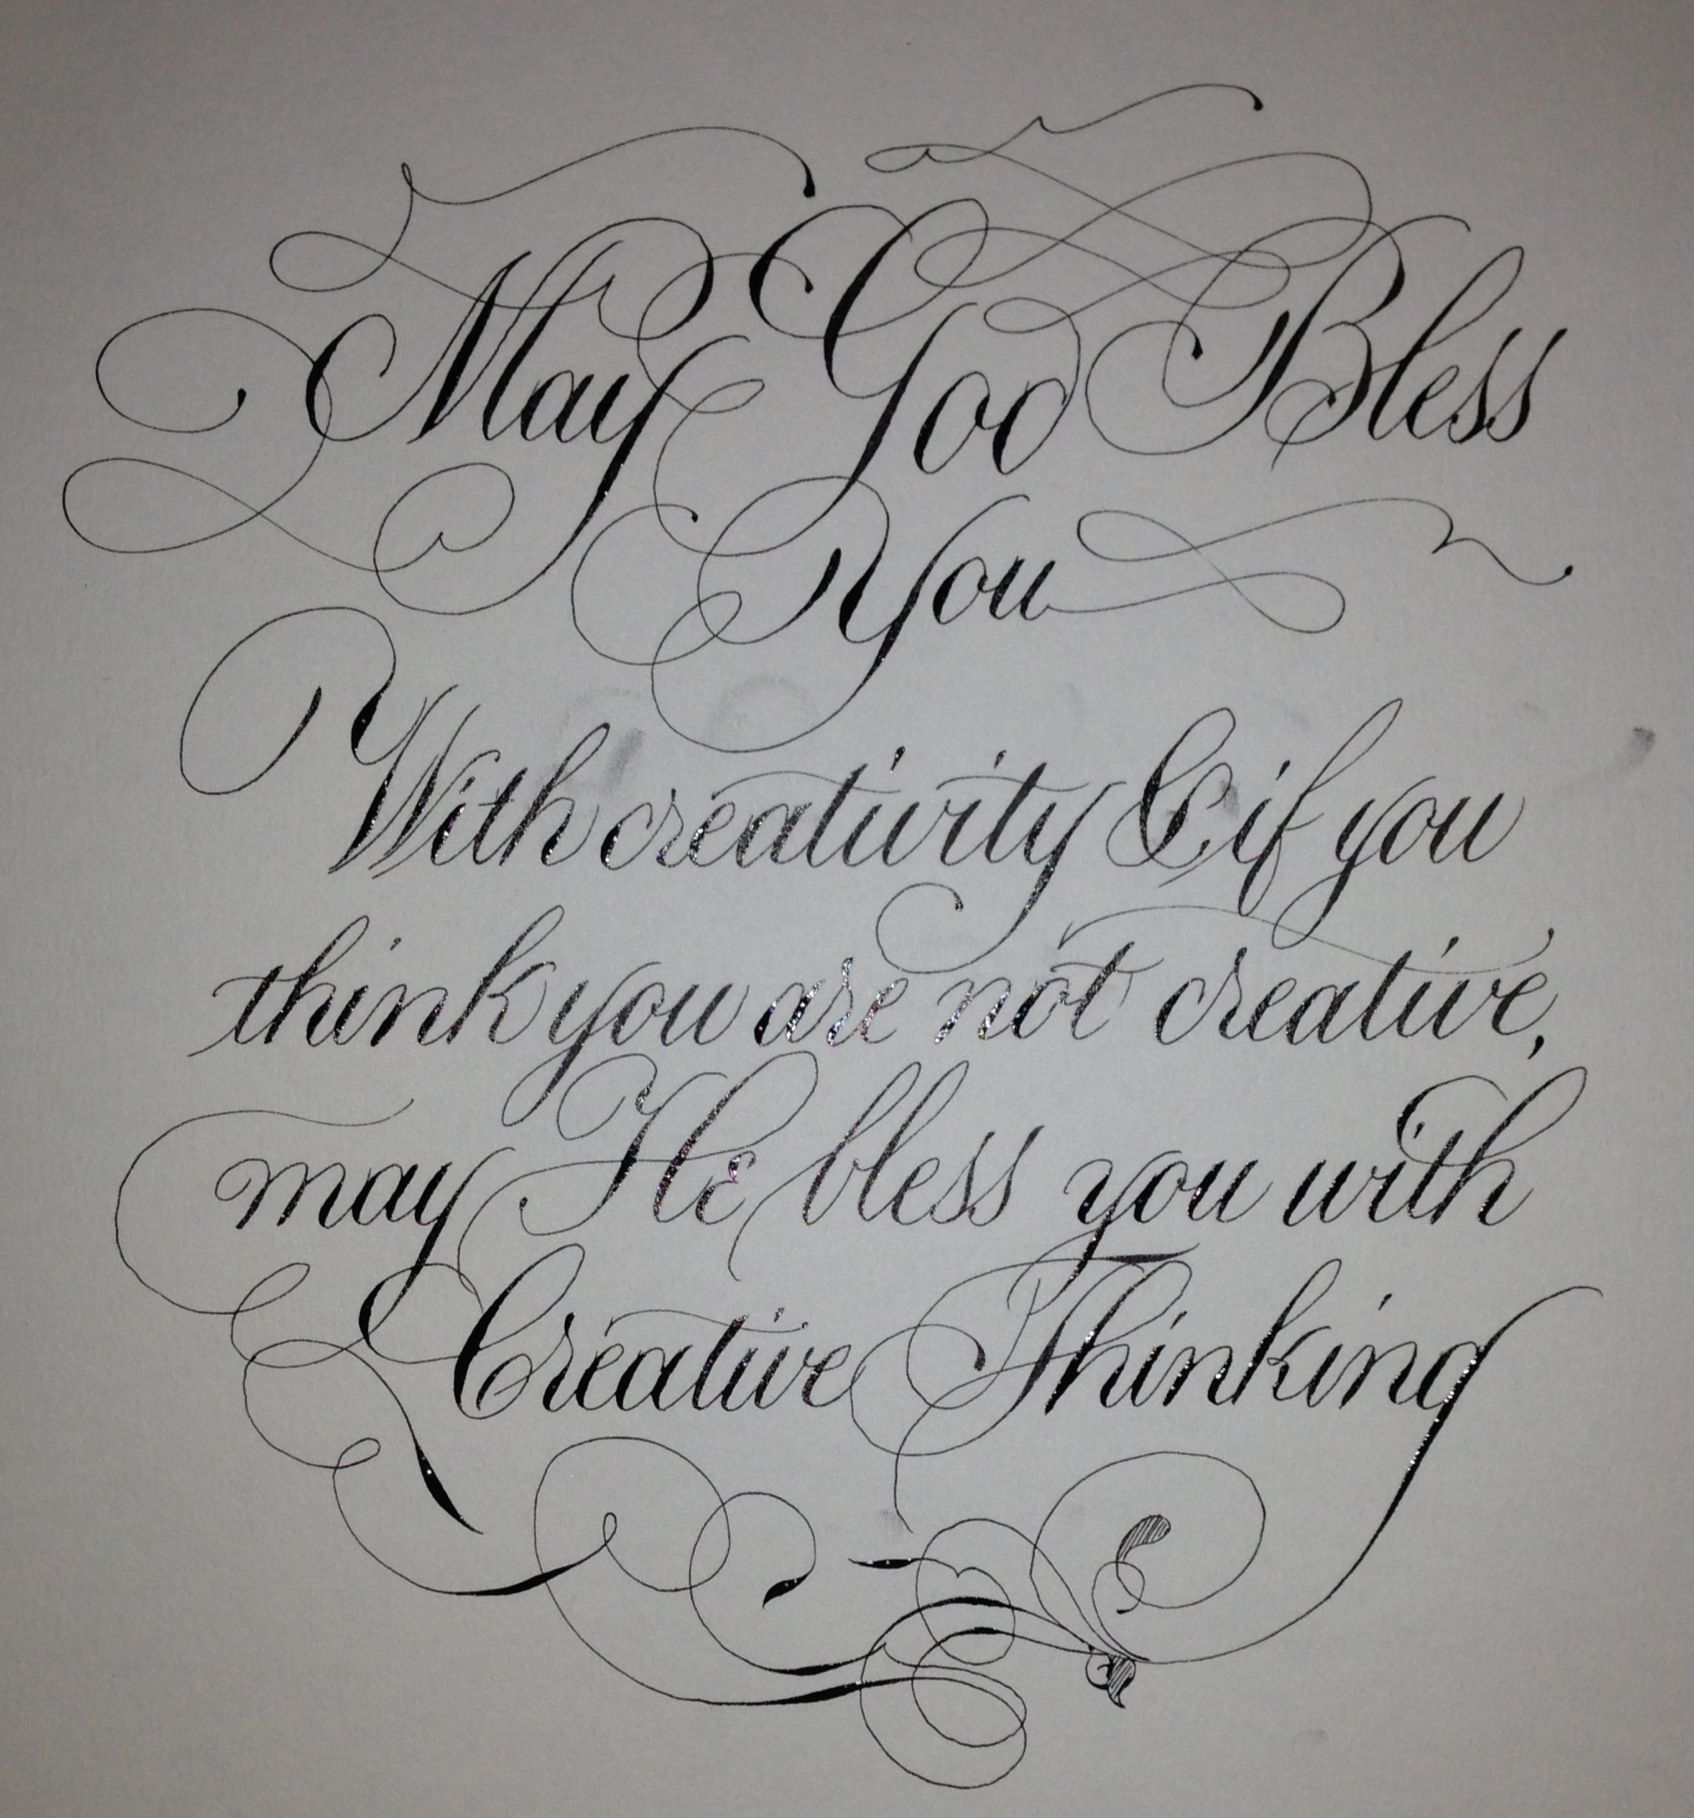 Blessing For Today Flourished Copperplate With Some 19th Century American Flourishing Thrown In